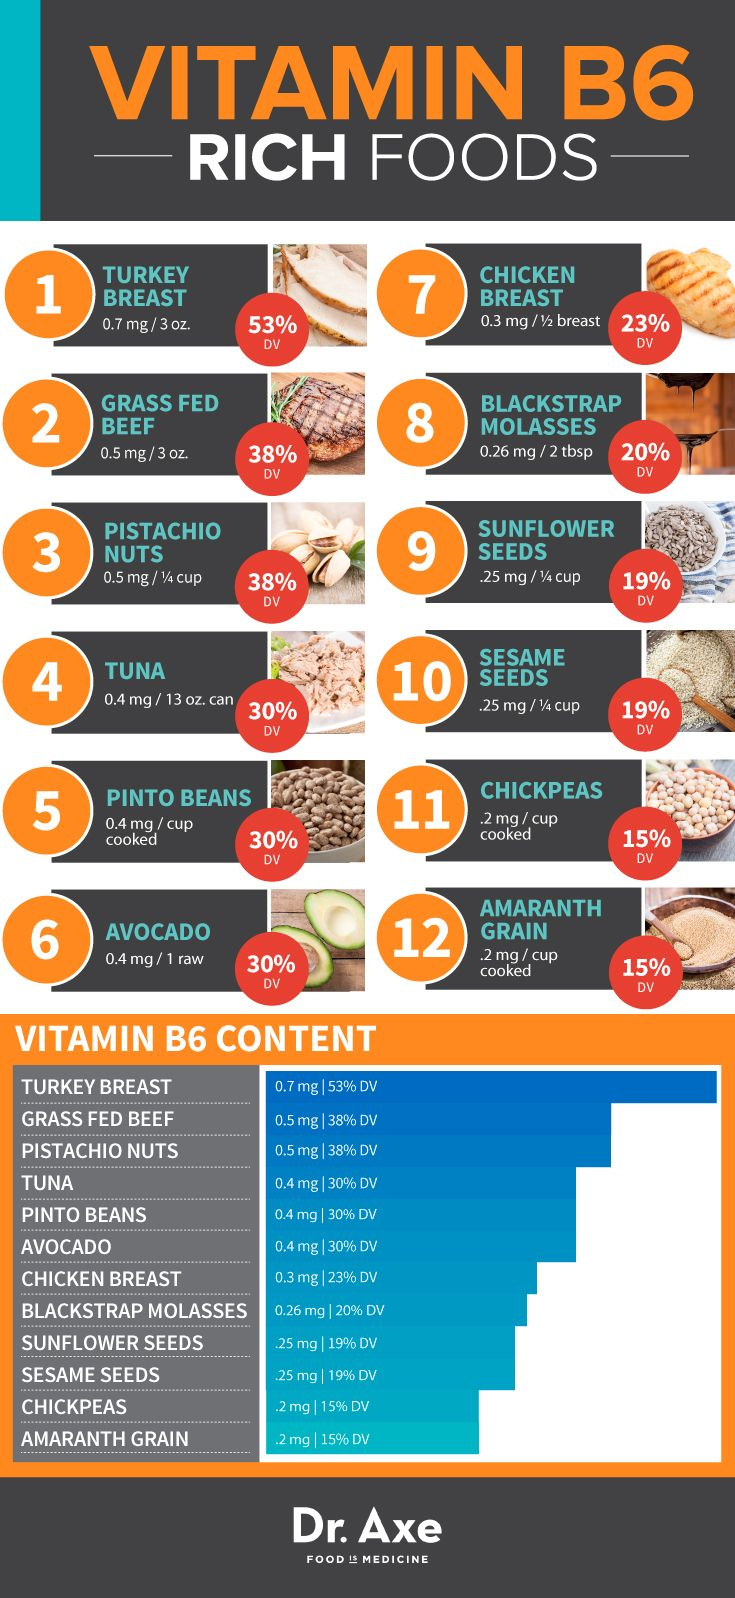 Prime Your Brain To Create More Happy Hormones With These Foods Foods With Calcium Nutrition Facts Vitamin B6 Foods